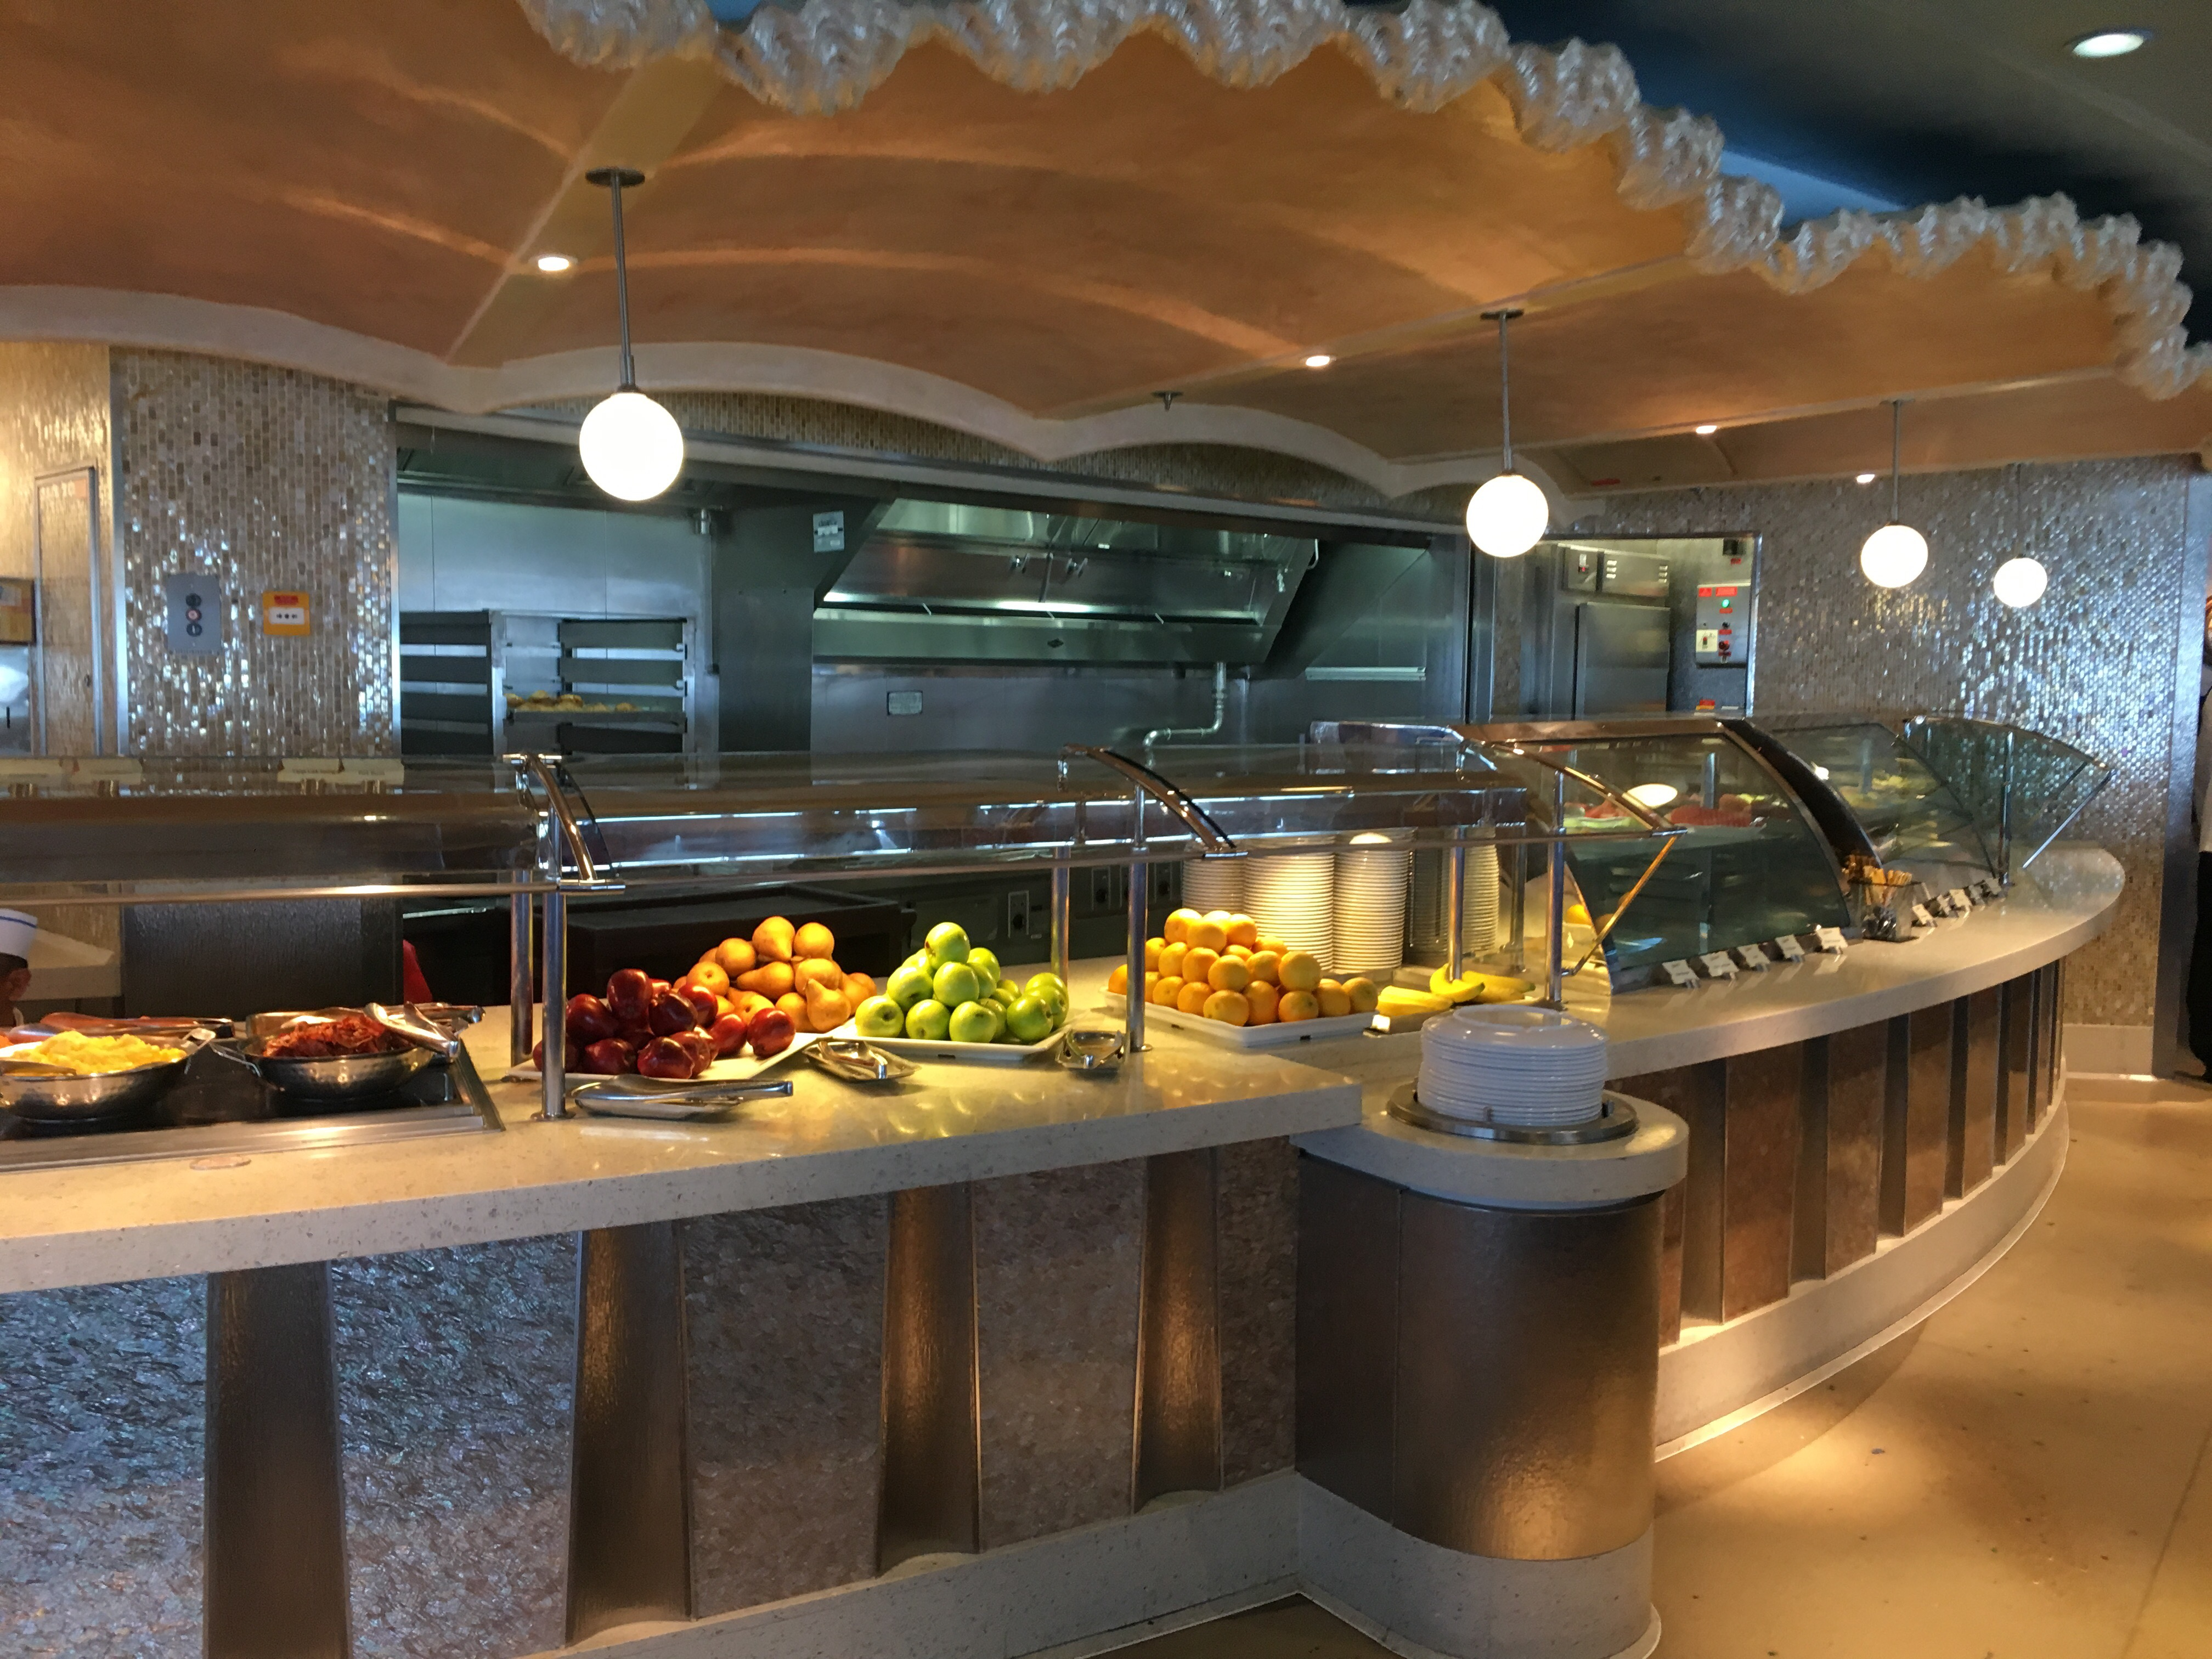 25 Tips to Save BIG on Your Next Cruise - cruise buffet